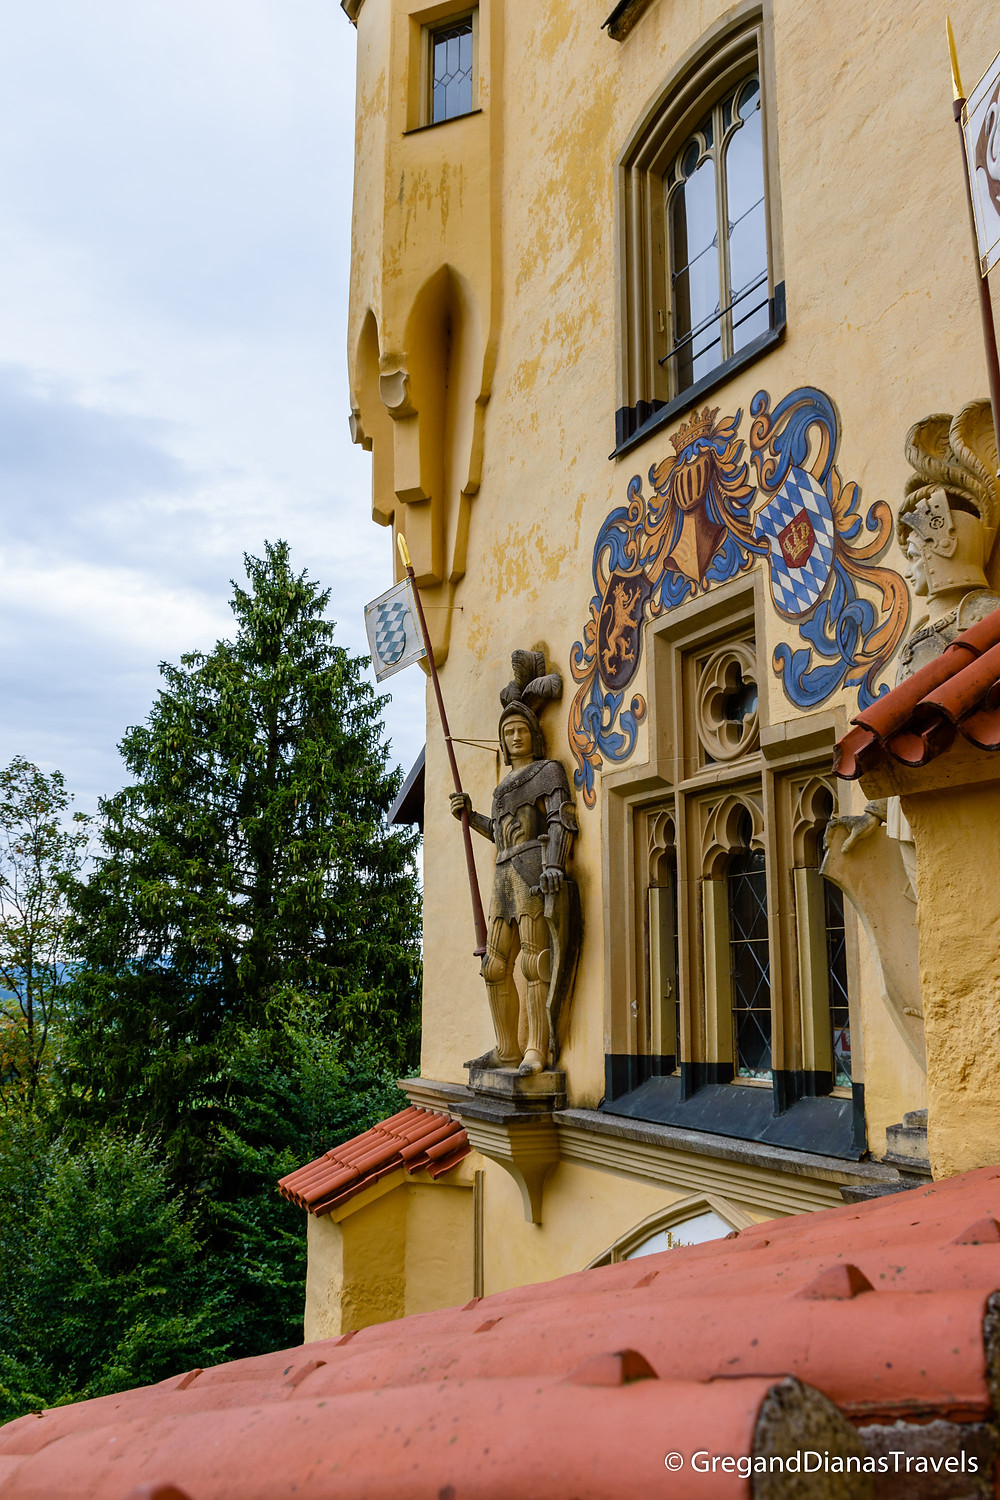 Hochenschwangau Castle, Bavaria Germany, Travel blog, Travel photography, Sculptures of knights